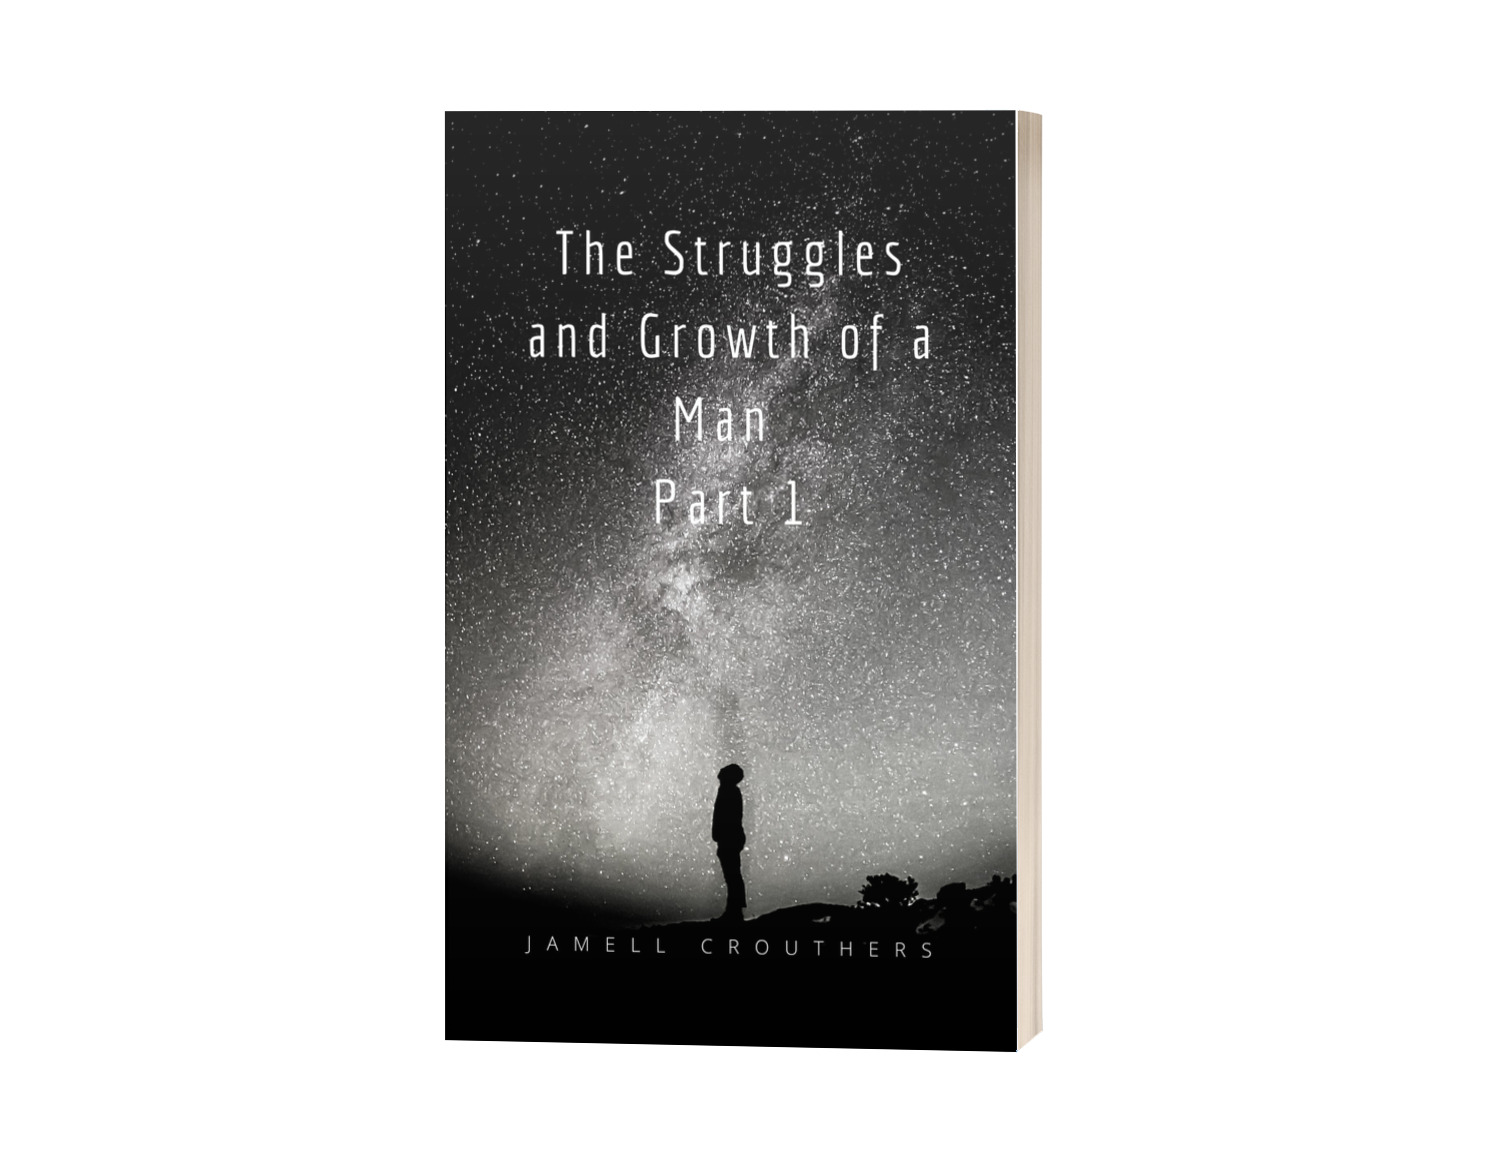 Struggles and Growth Part 1 chronicles the life of Robert where he talks about his life from childhood to present and the struggles he deals with regarding social stigmas in the world.